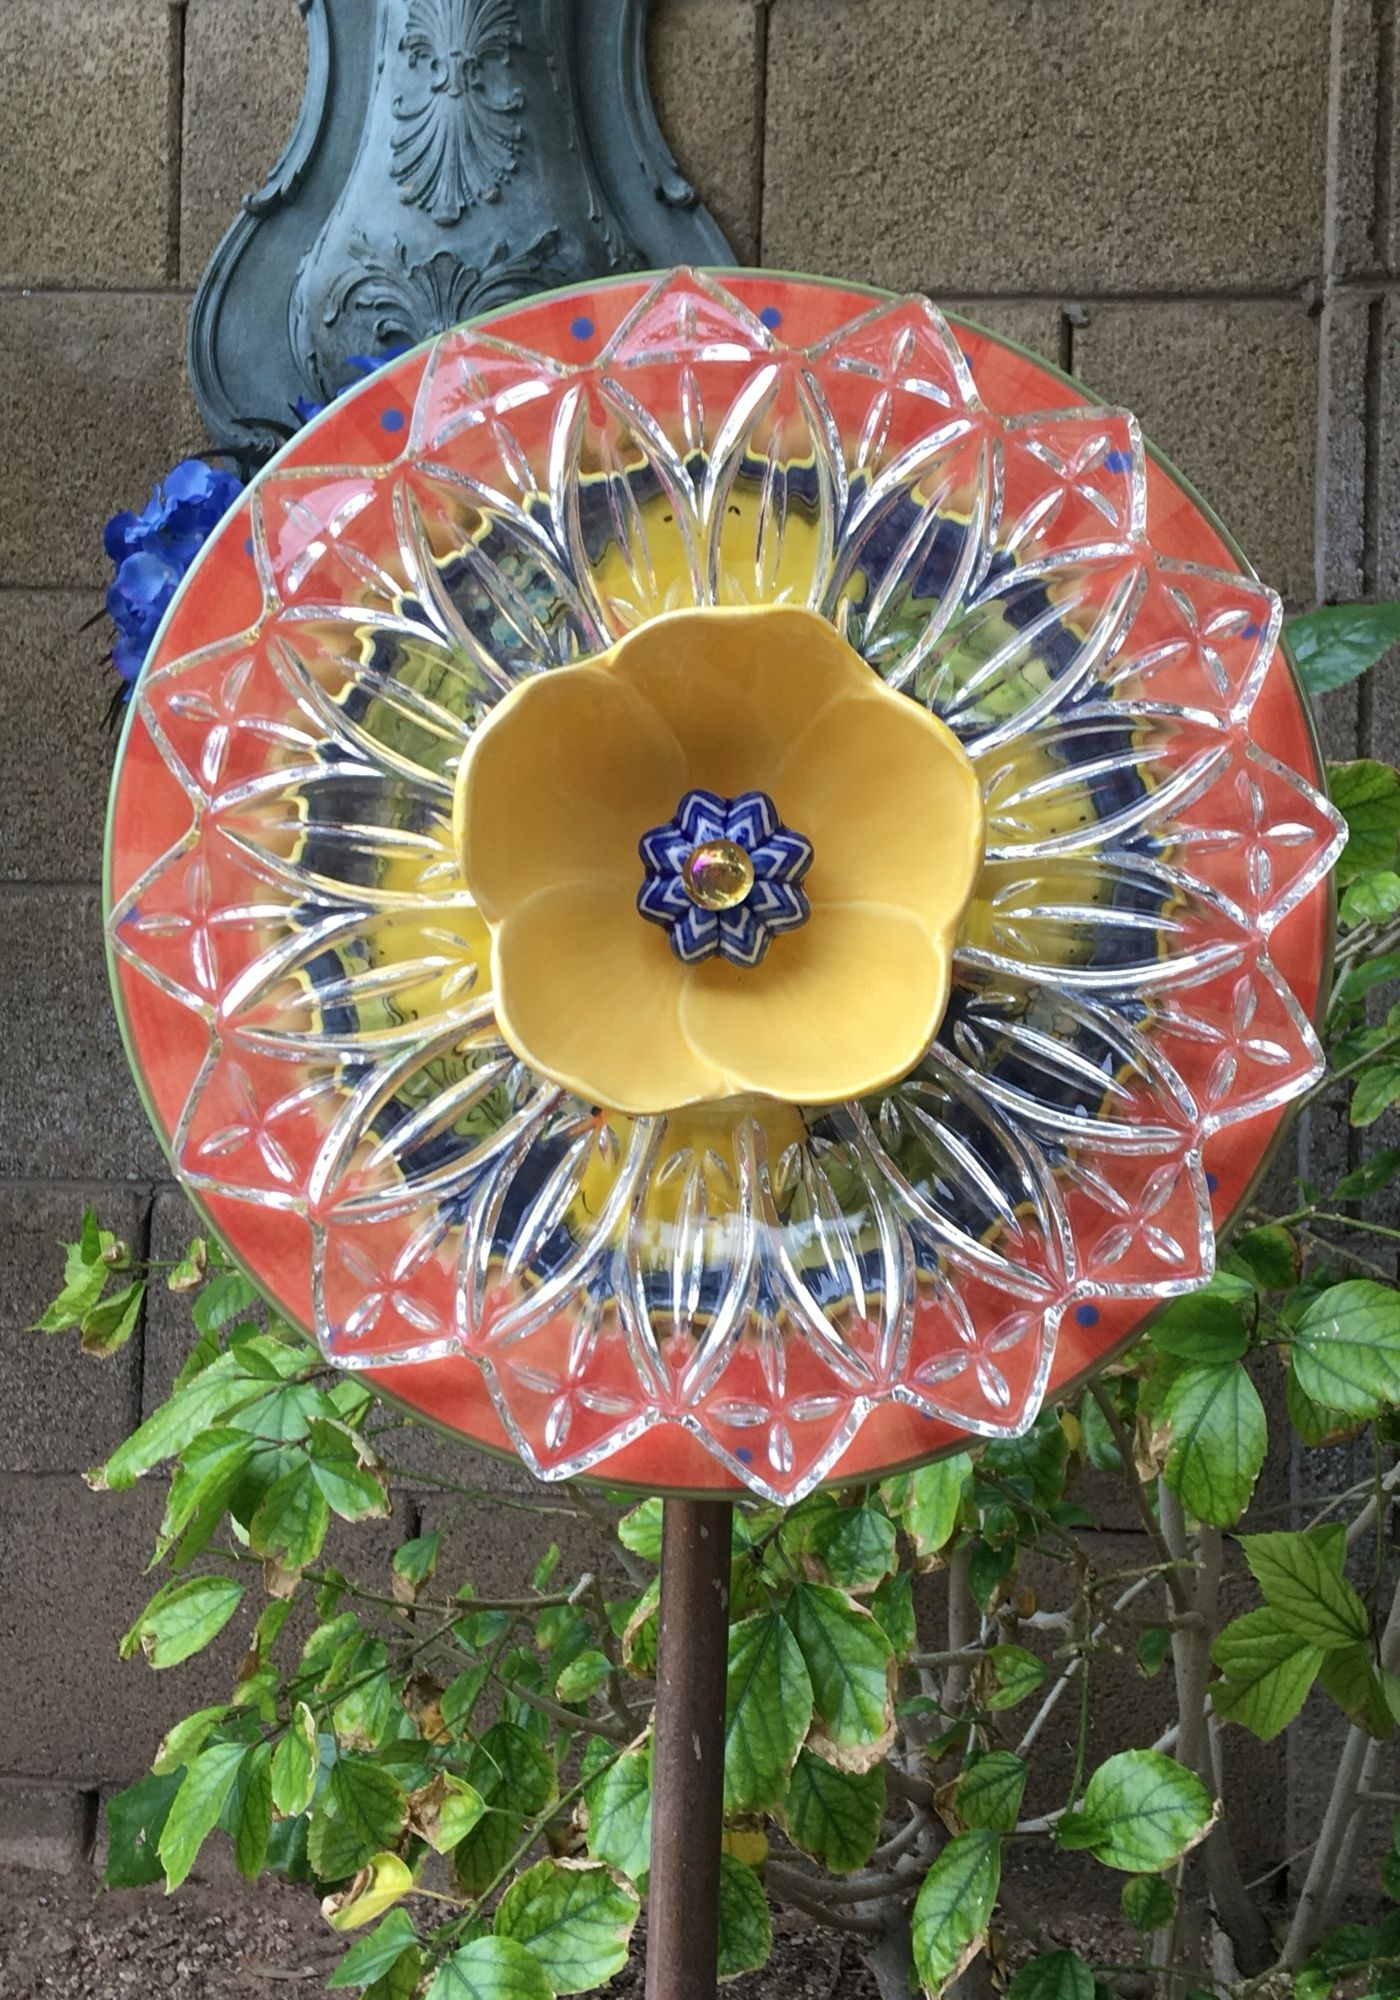 Plate Flower Made Of Repurposed Items. | For The Garden | Pinterest for Garden Flowers Made From Plates